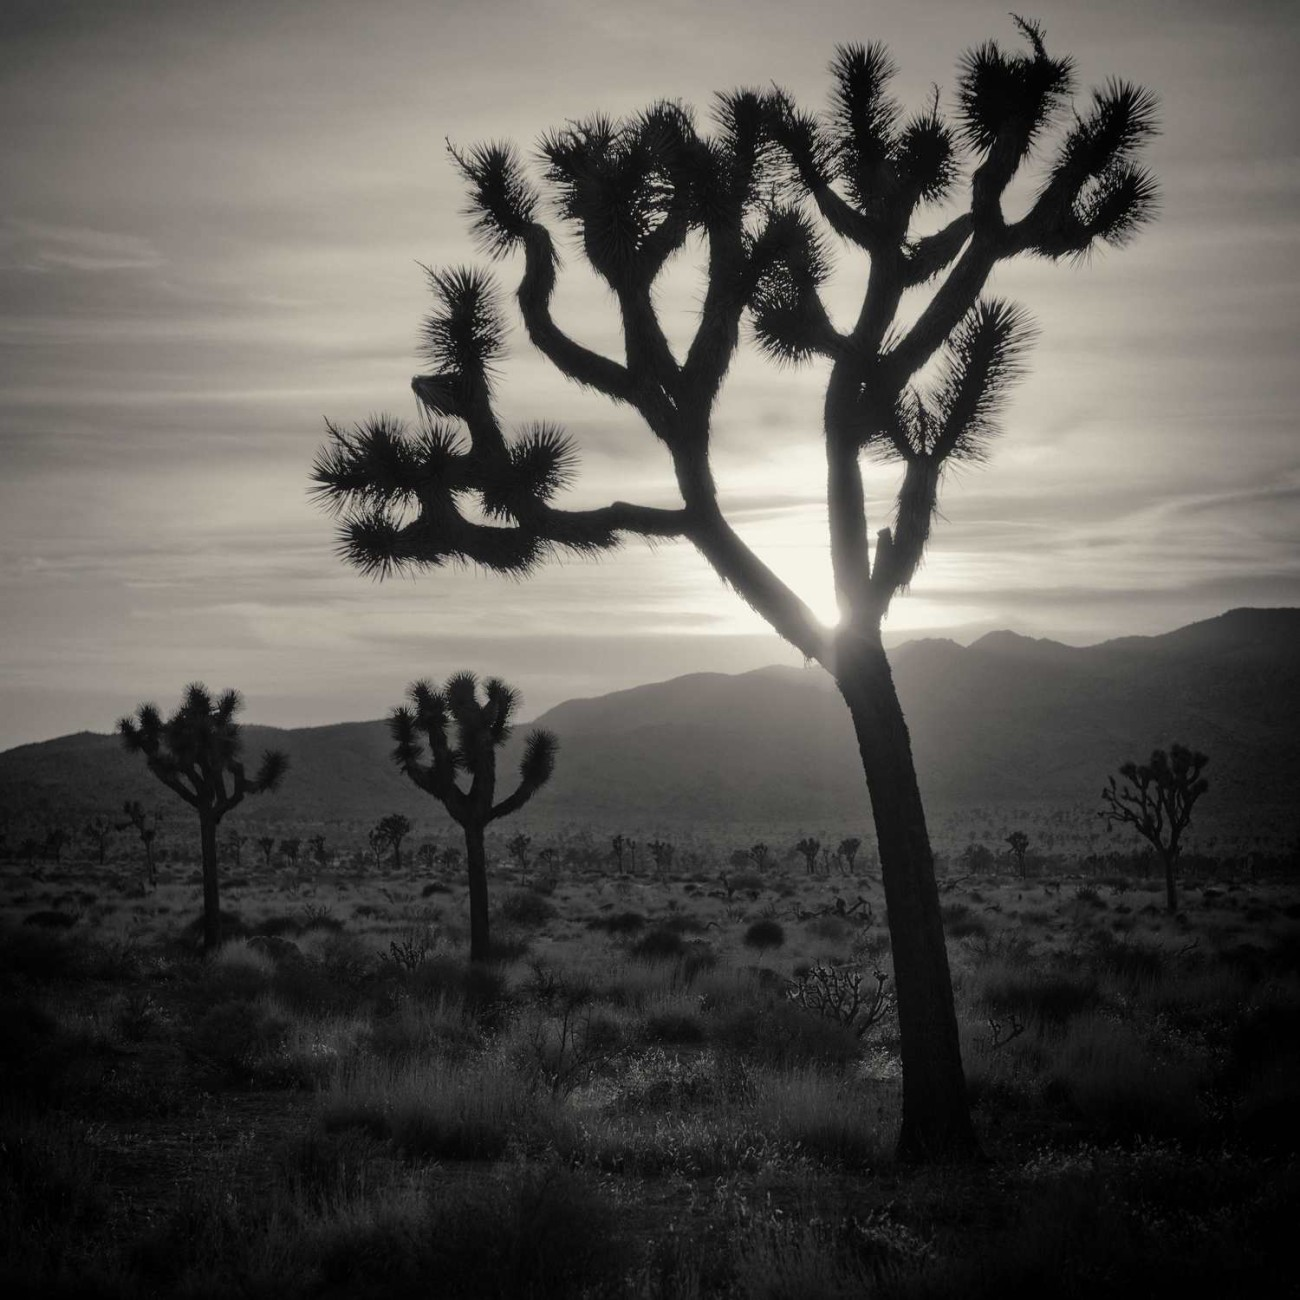 Joshua trees with sun, California, 2012